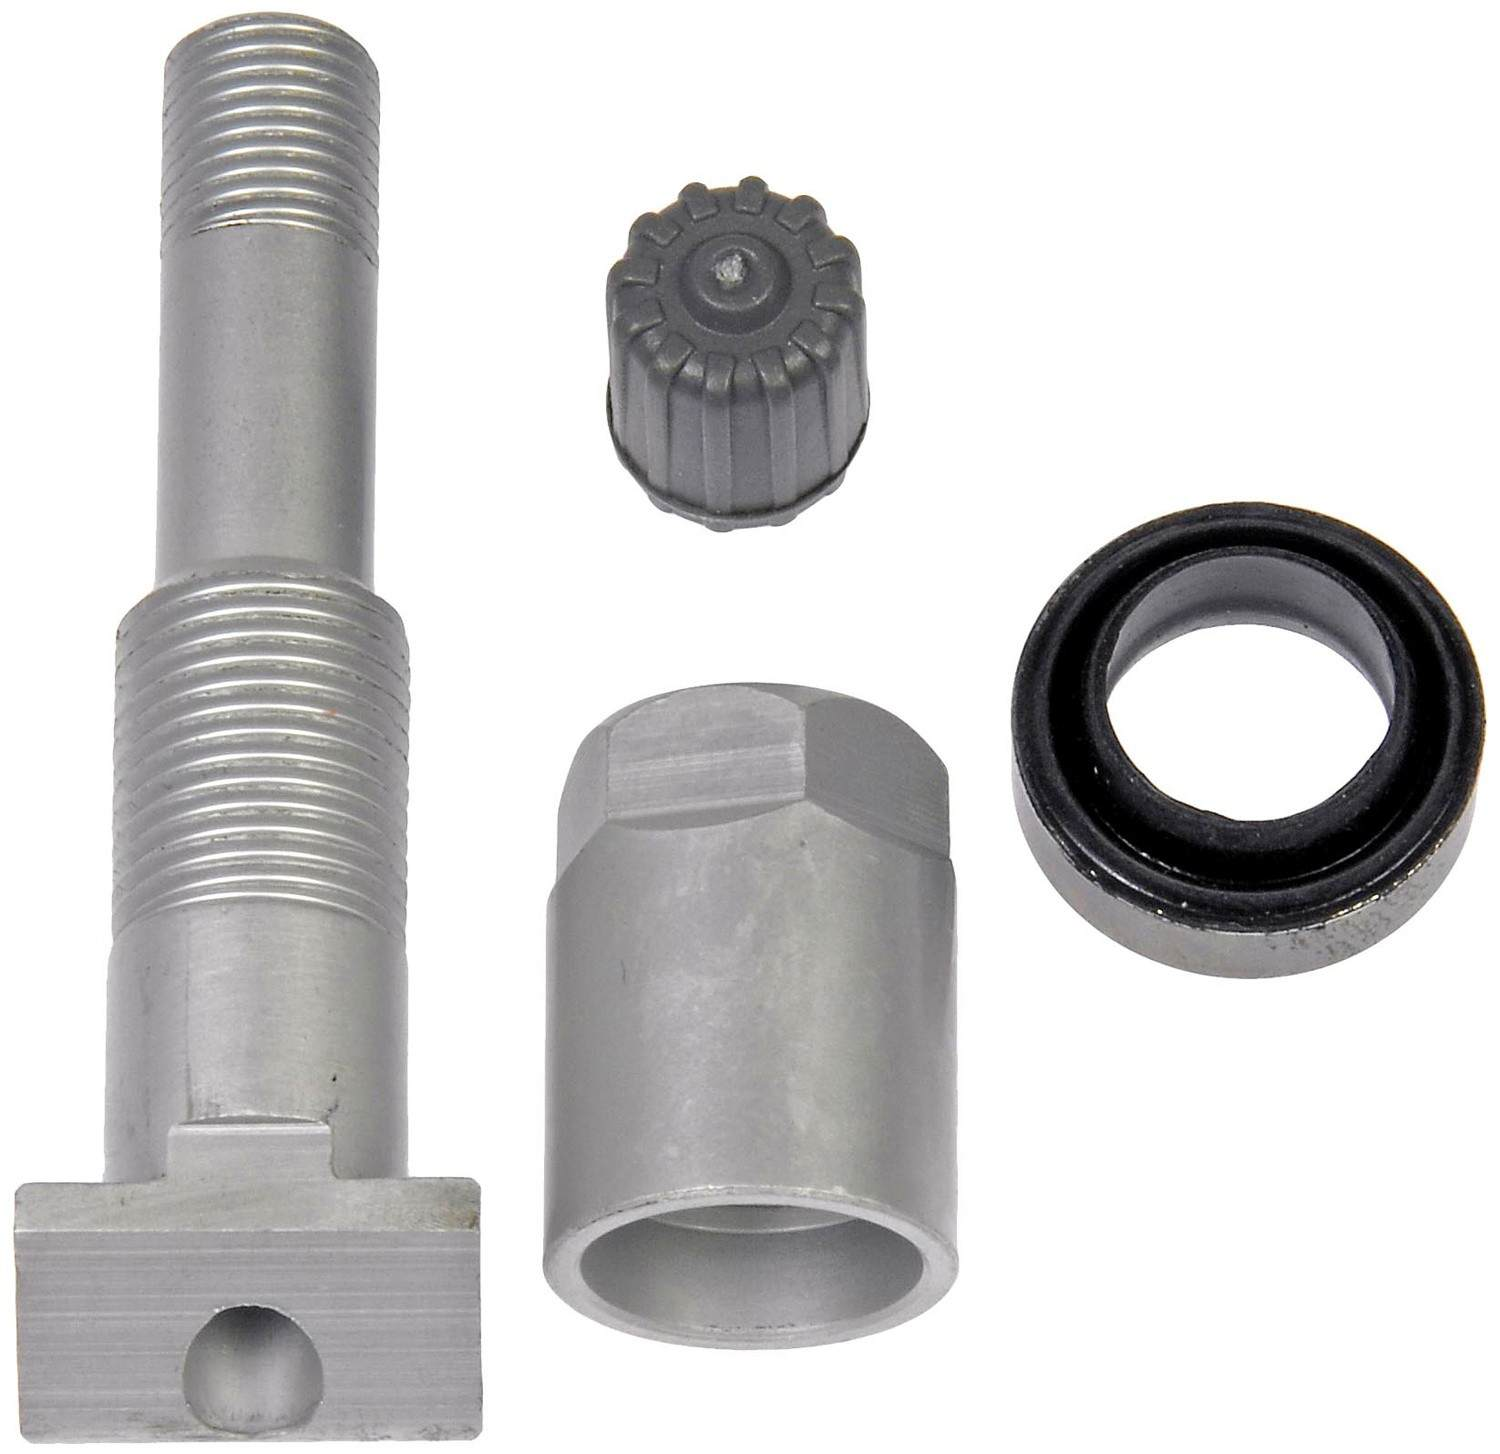 DORMAN OE SOLUTIONS - TPMS Valve Kit - DRE 609-122